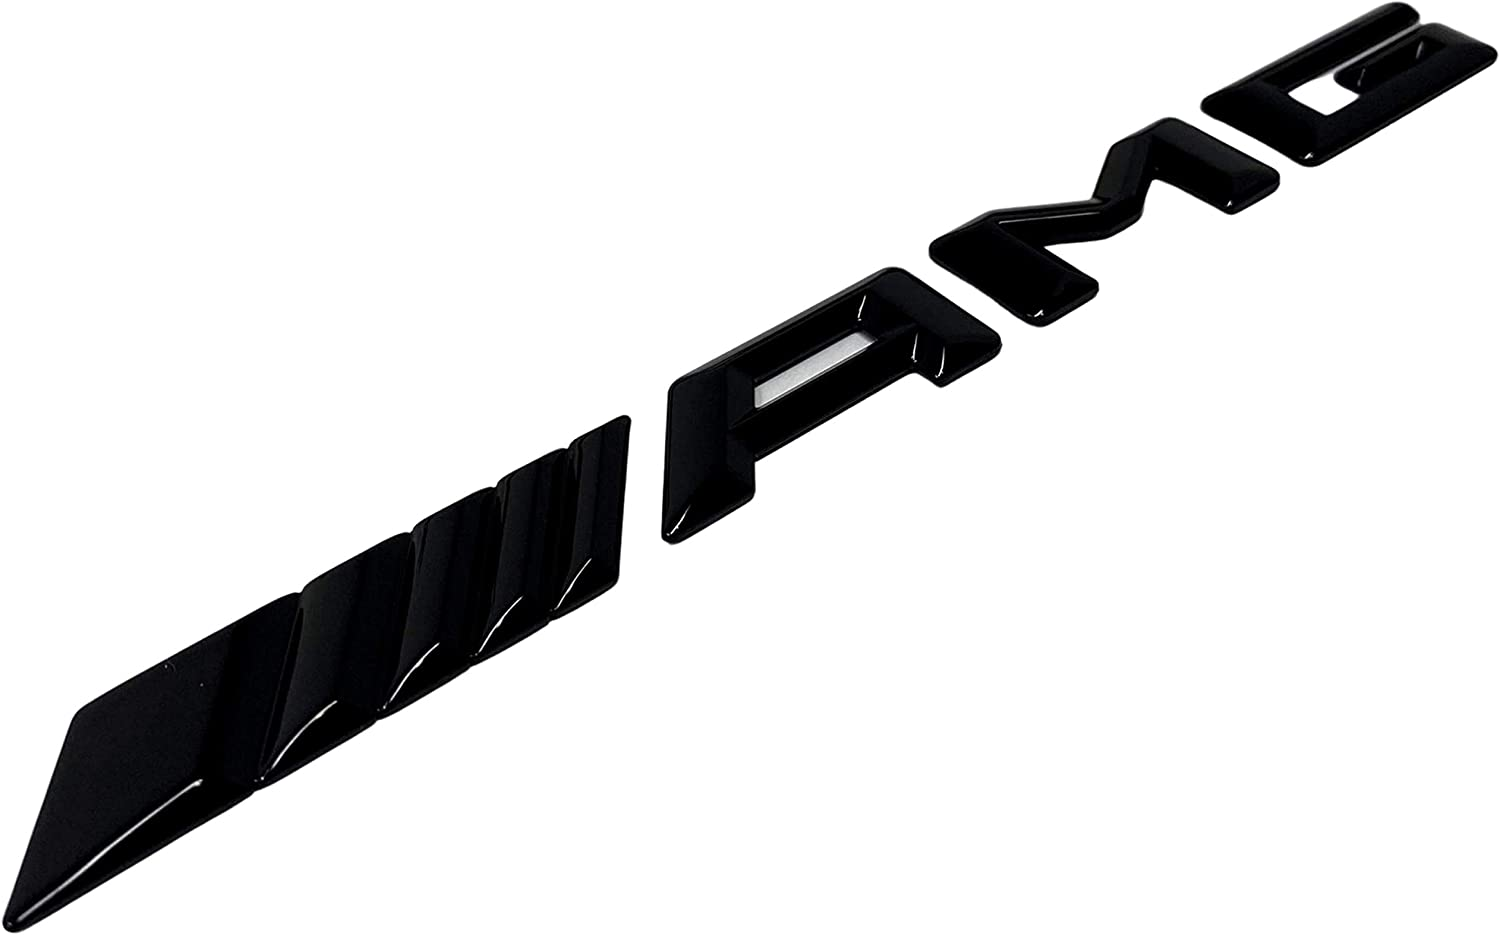 AMDCO AMG LETTERS CURVED REAR GLOSS BLACK Emblem Badge Stickers Decals with Strong 3M For BENZ AMG C S E etc pack of 1 AMG REAR